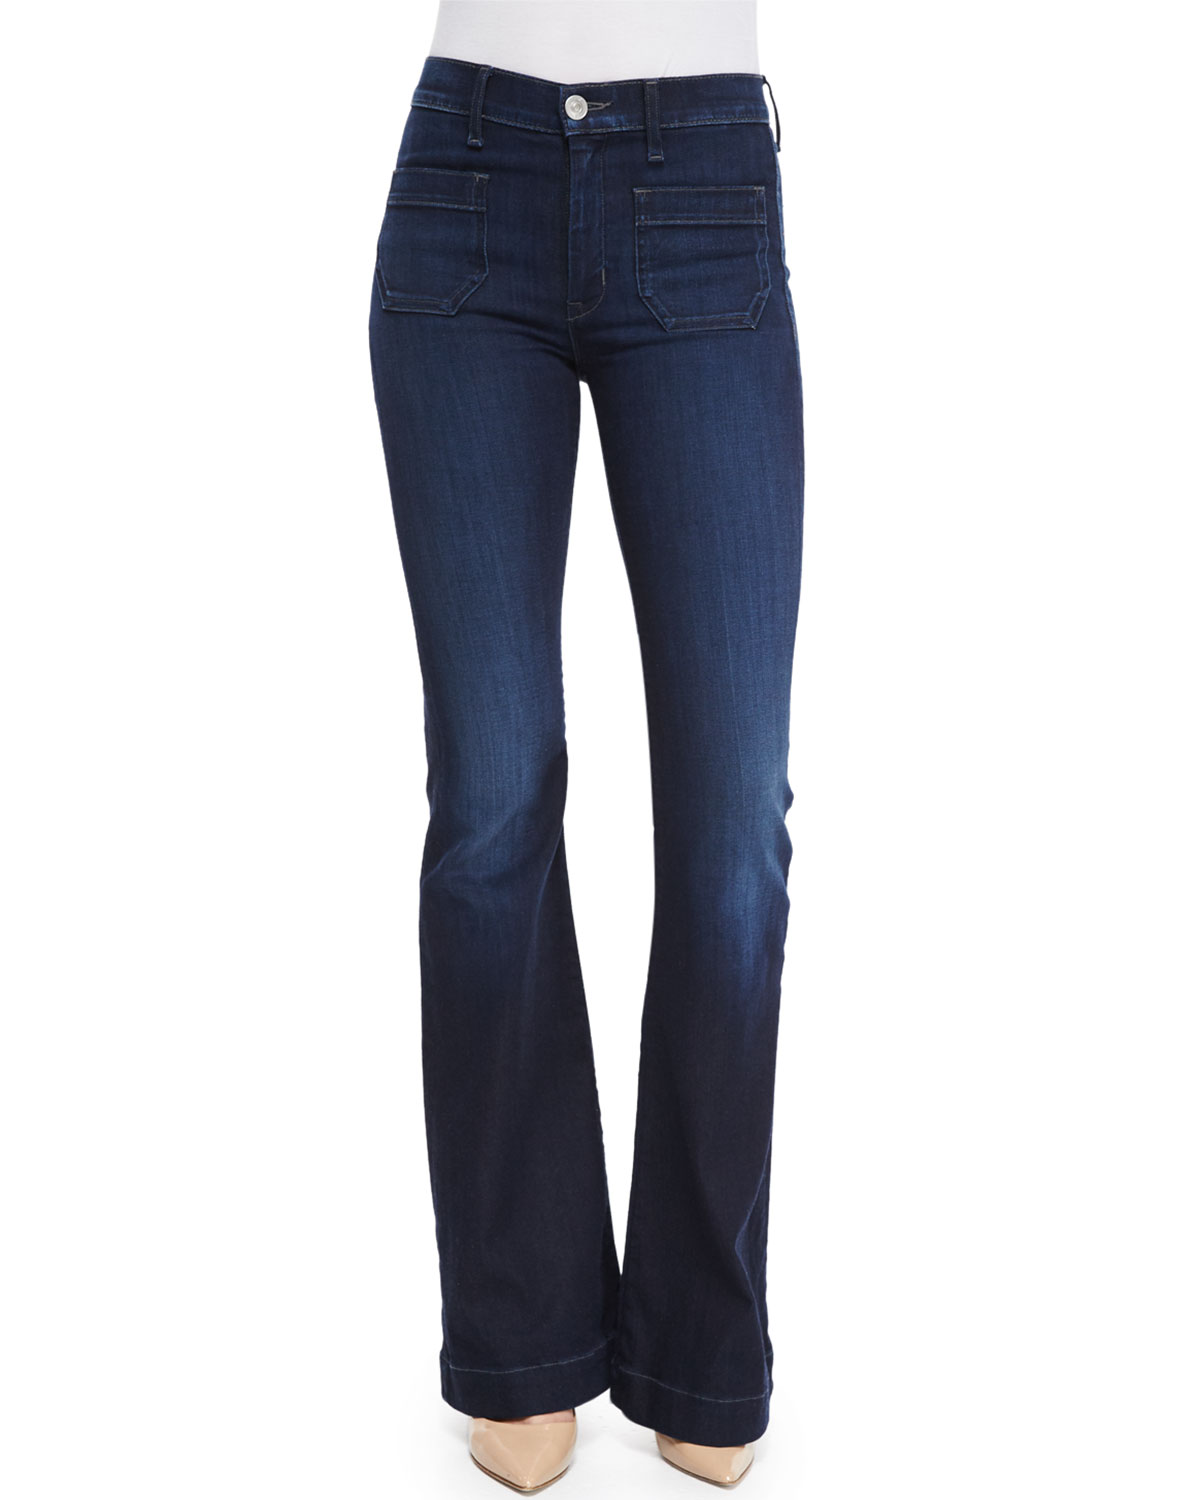 Hudson Taylor High-Rise Flare-Leg Jeans, Rogue Waves, Size: 26, Rouge Waves